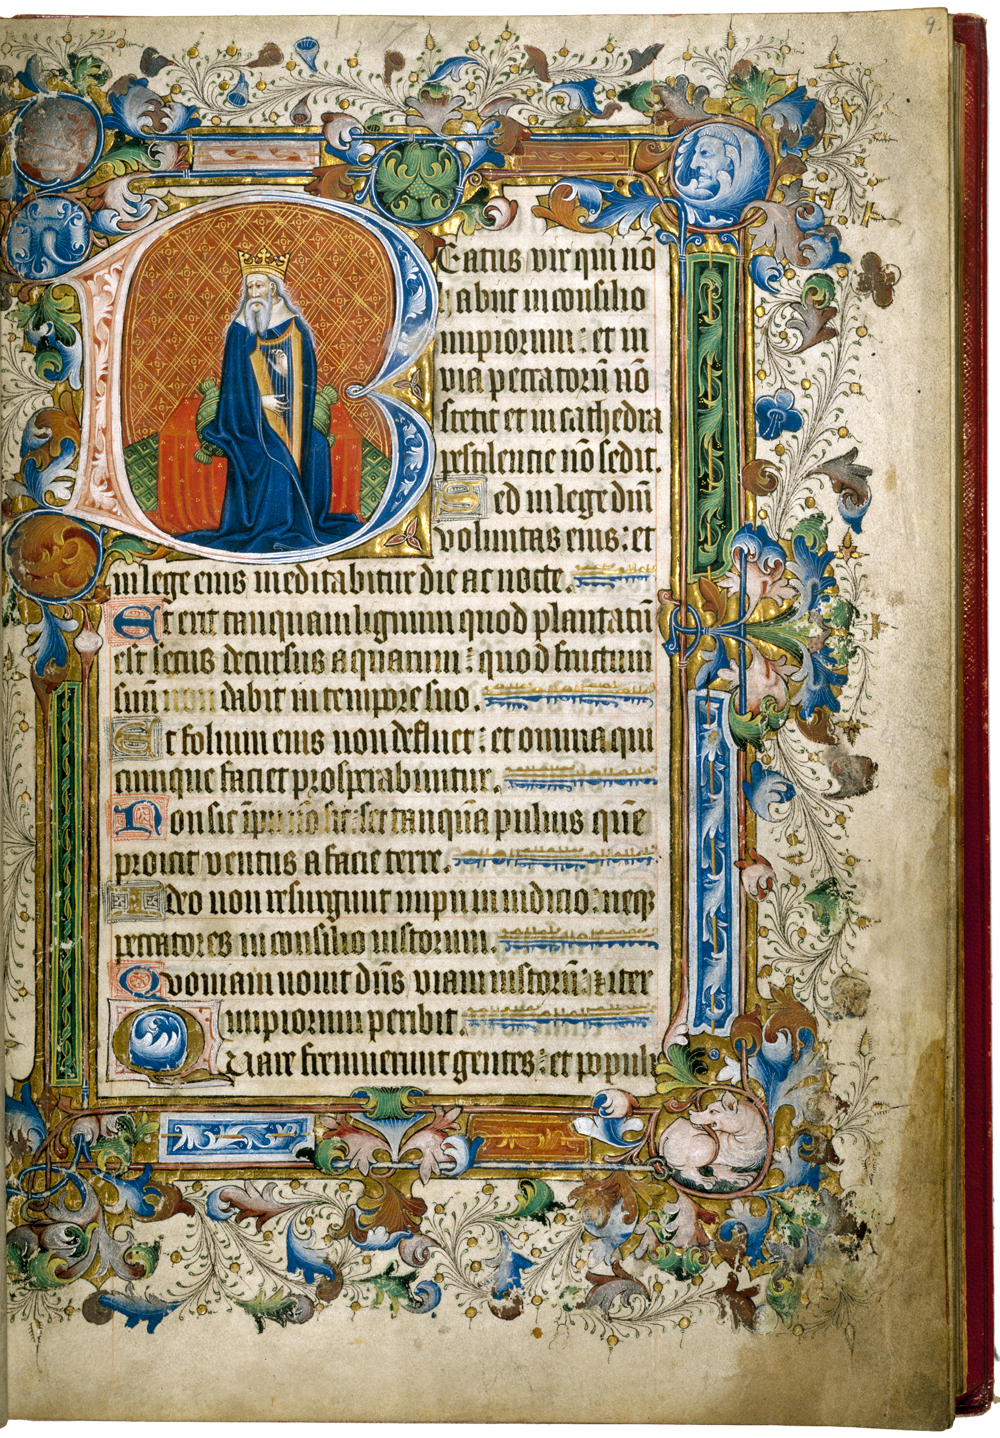 Psalter owned by Owen Jones, dated between 1400 and 1424 C.E. National Art Library: MSL/1902/1683